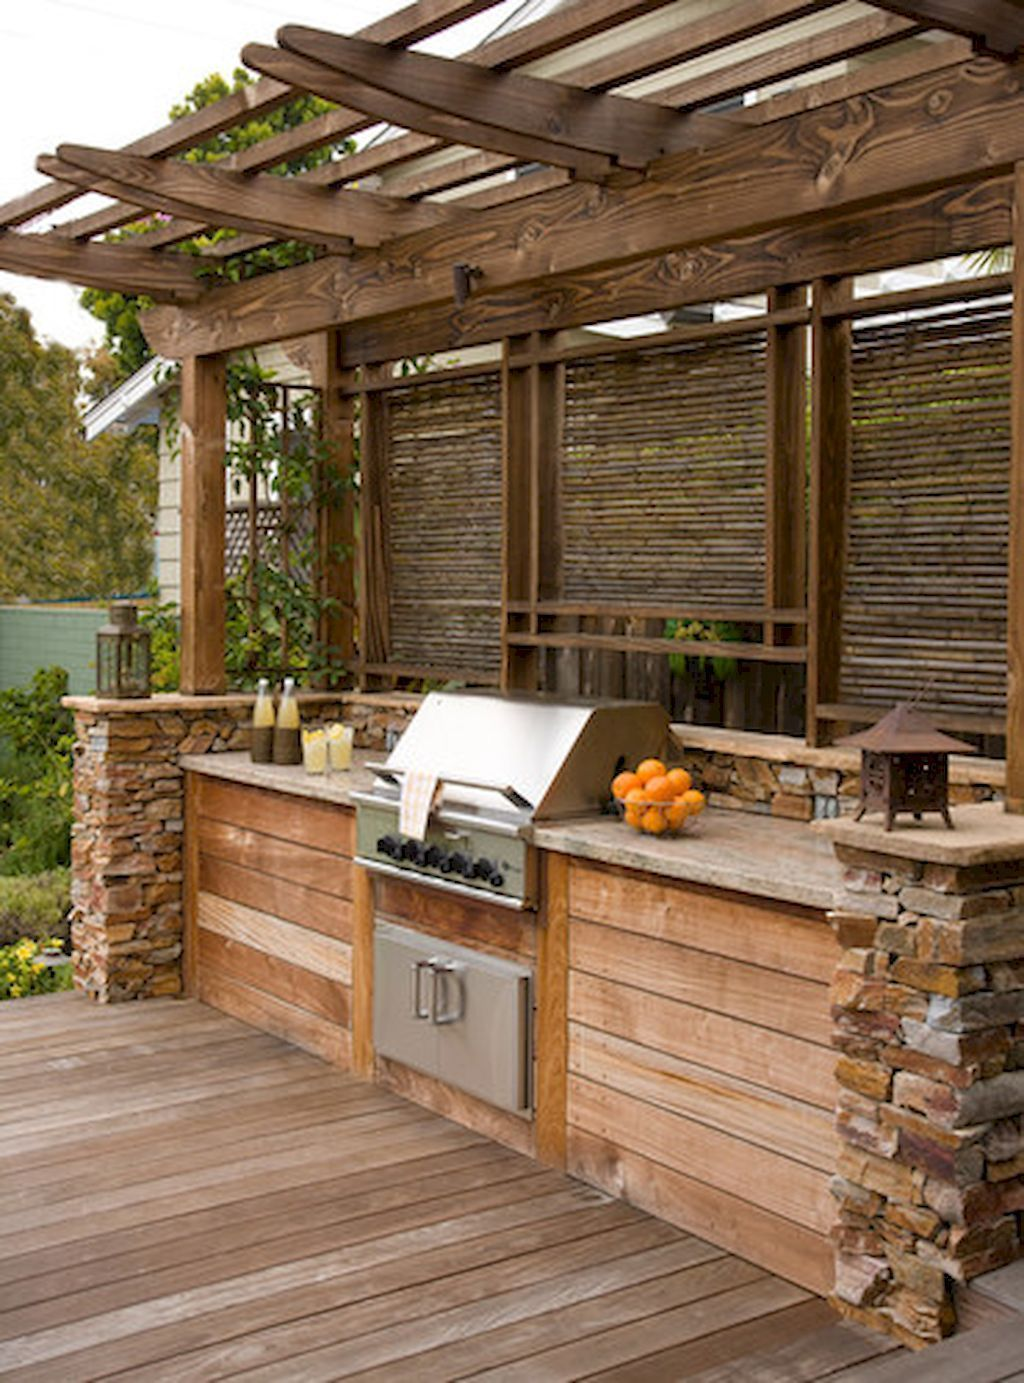 Outdoor Kitchen Ideas Get Our Finest Concepts For Outdoor